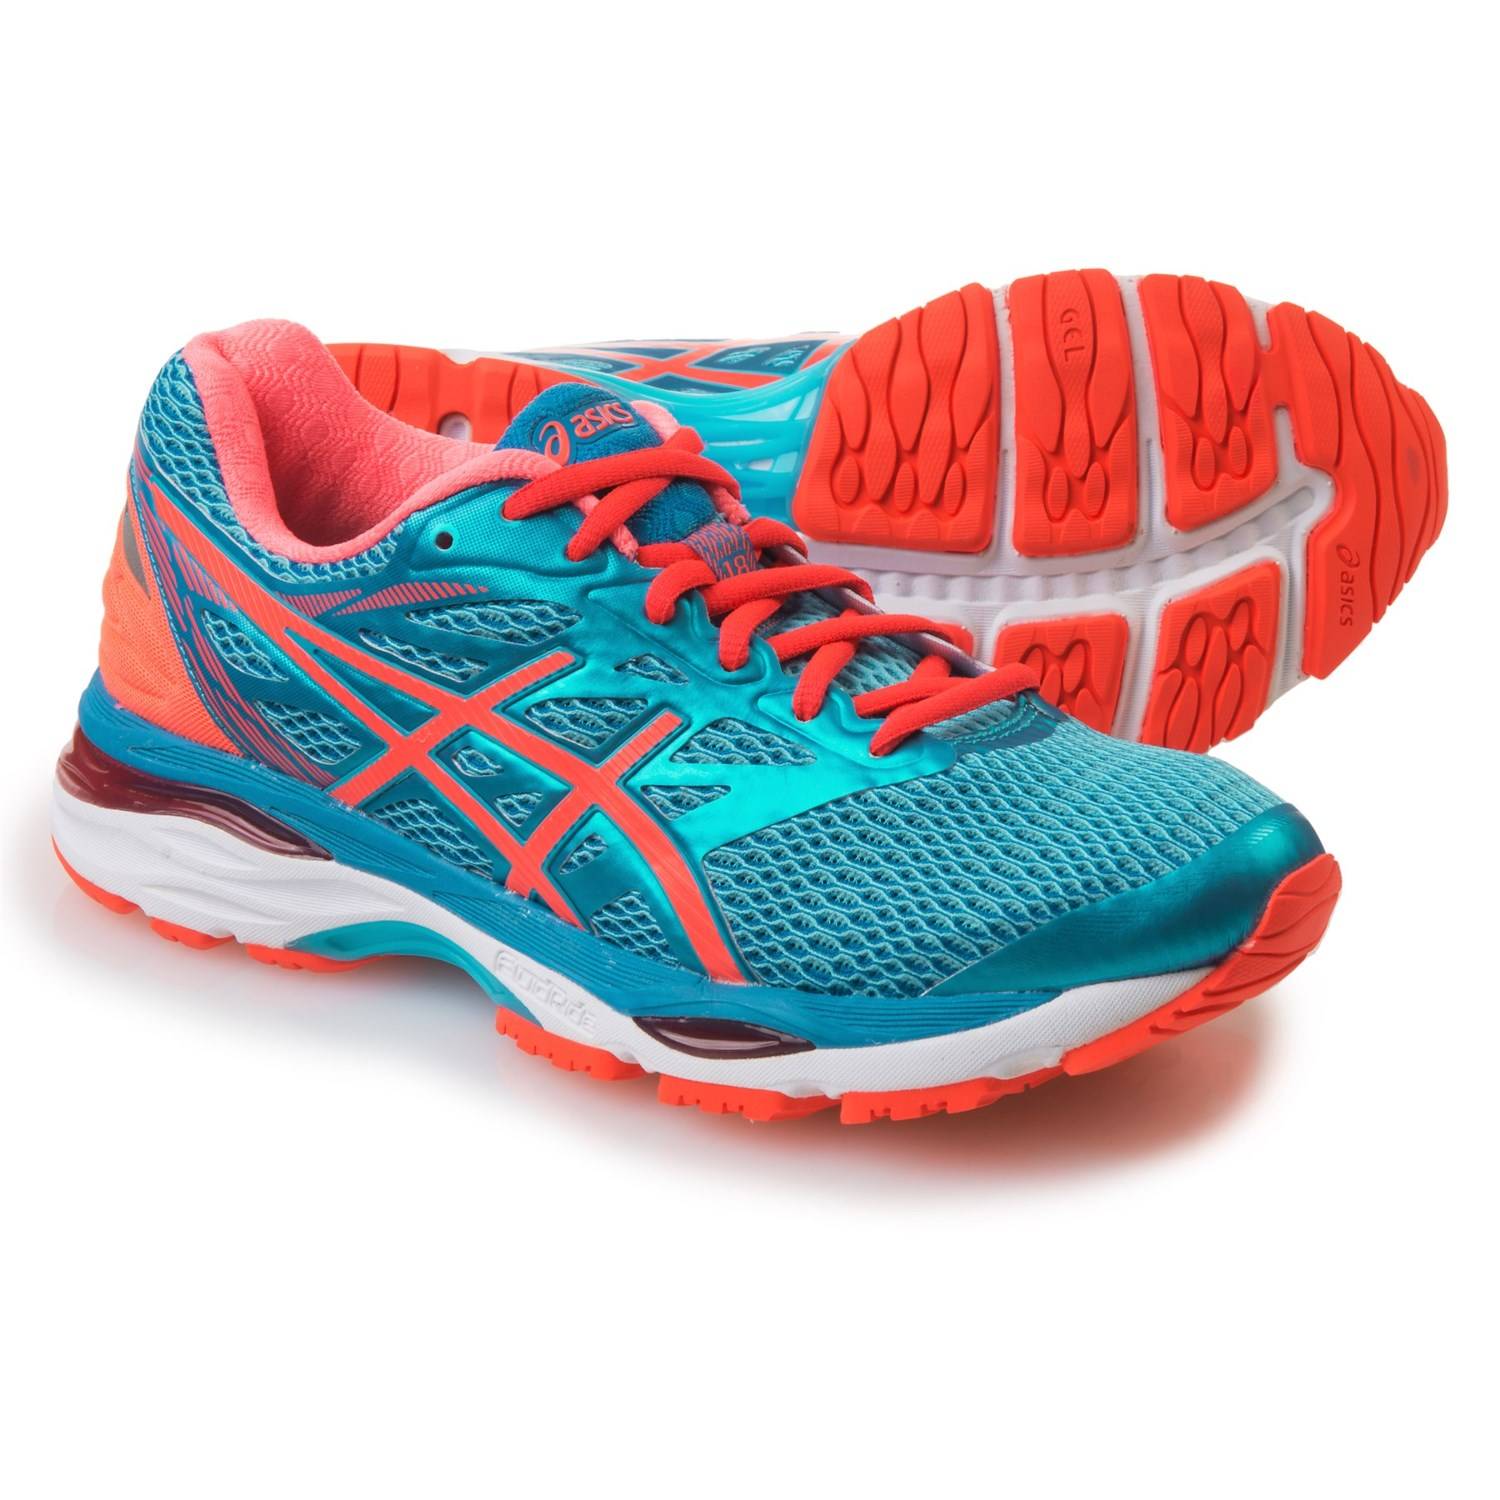 Asics Running Shoes Offers